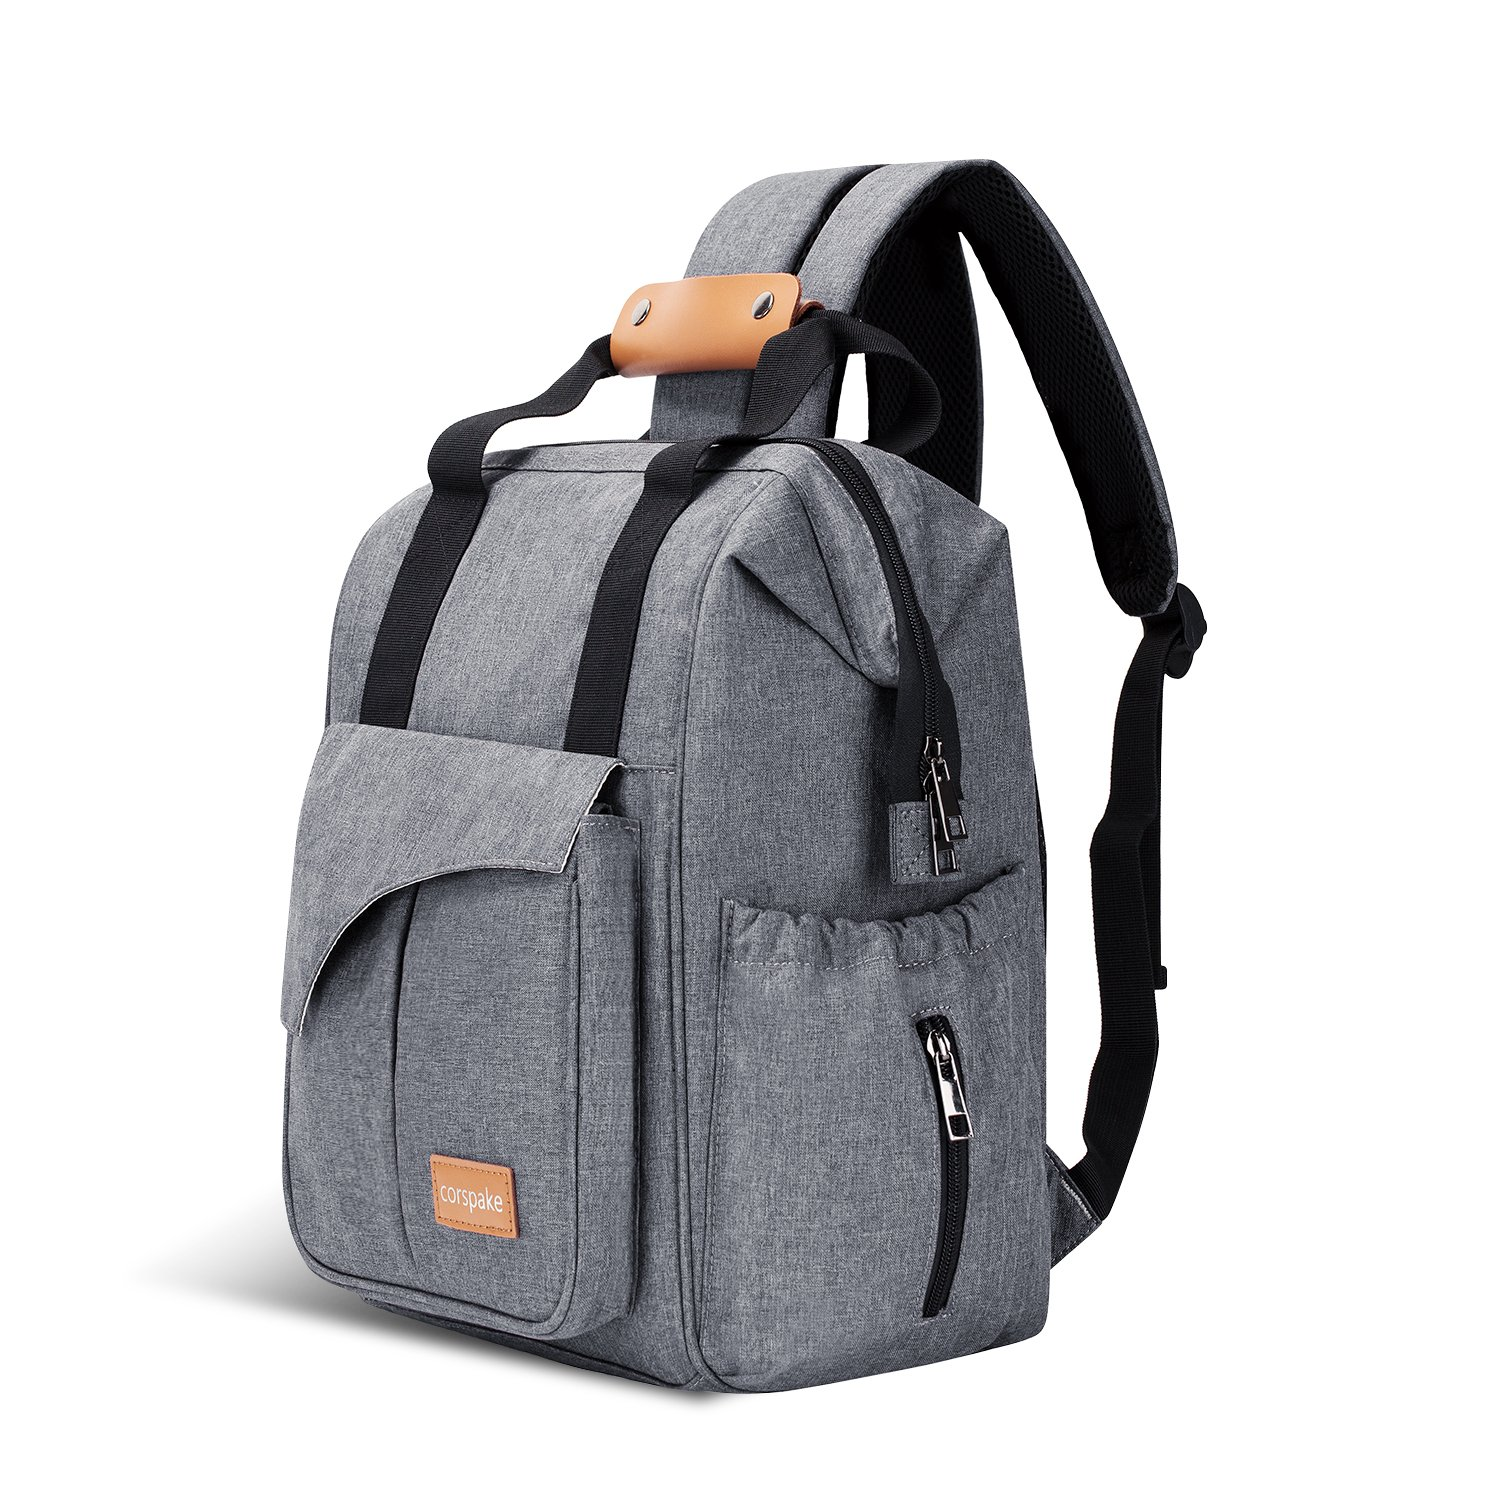 Grey Diaper Bag Backpack,Corspake Nappy Changing Backpack Mummy Bag with Insulated Pockets,Multi-Function Waterproof Baby Changing Bag Handbag with Stroller Hooks,Durable and Stylish